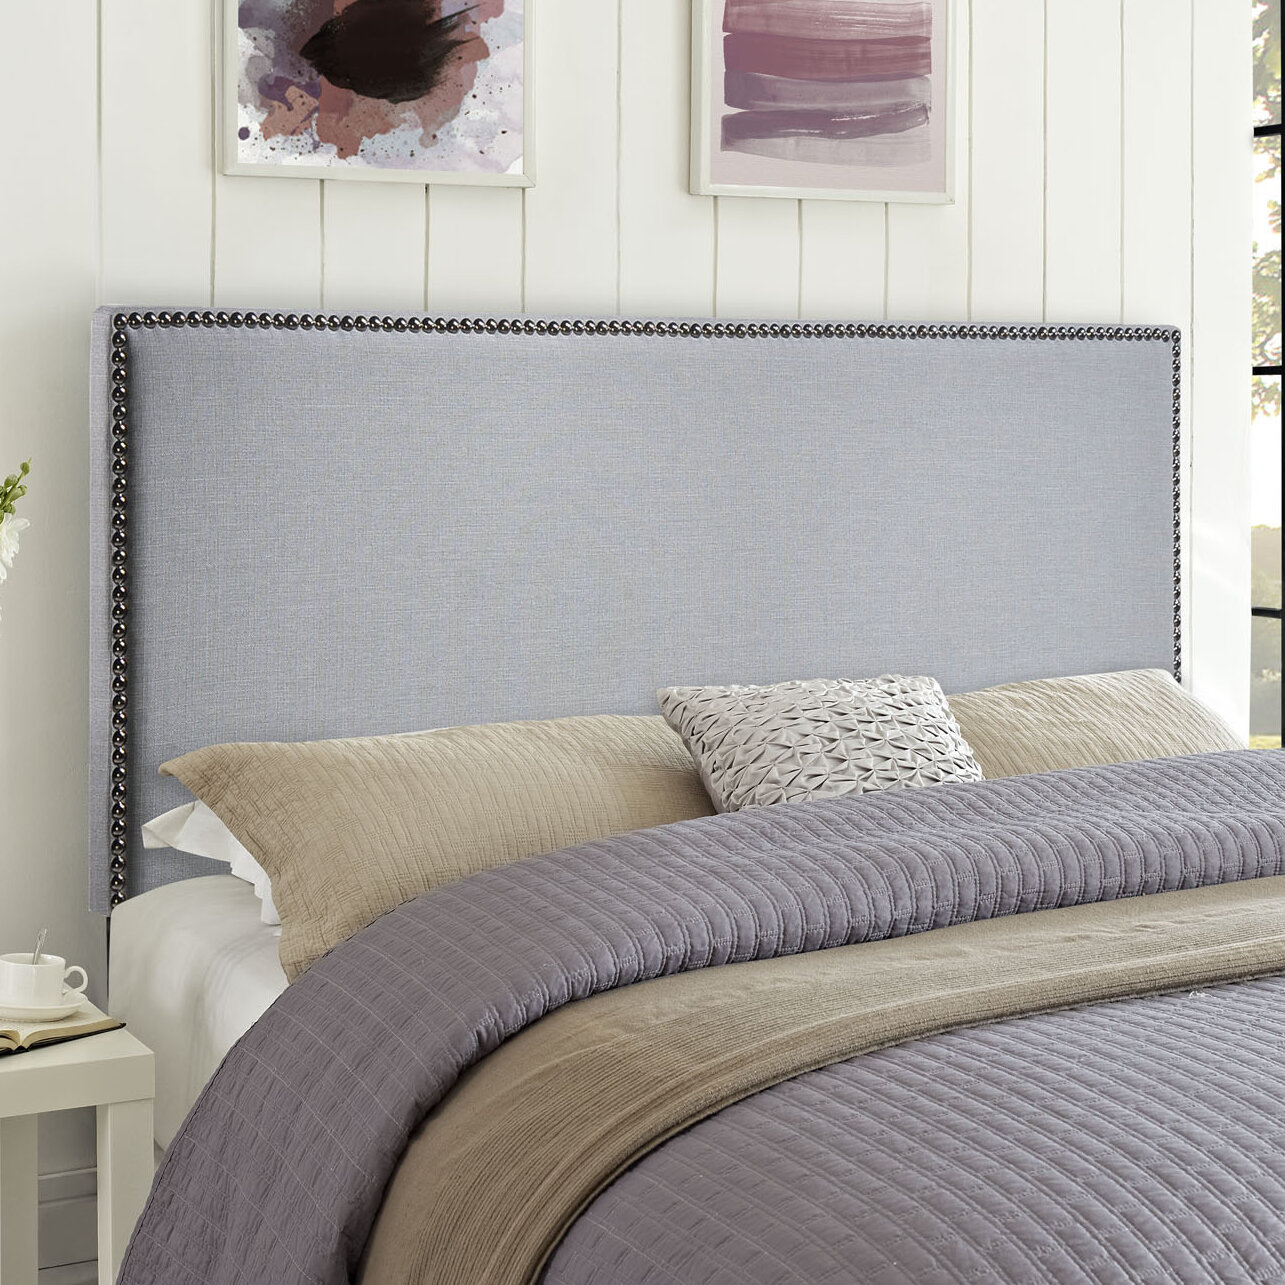 headboards upholstered white full wood cottages country cottage ideas french headboard